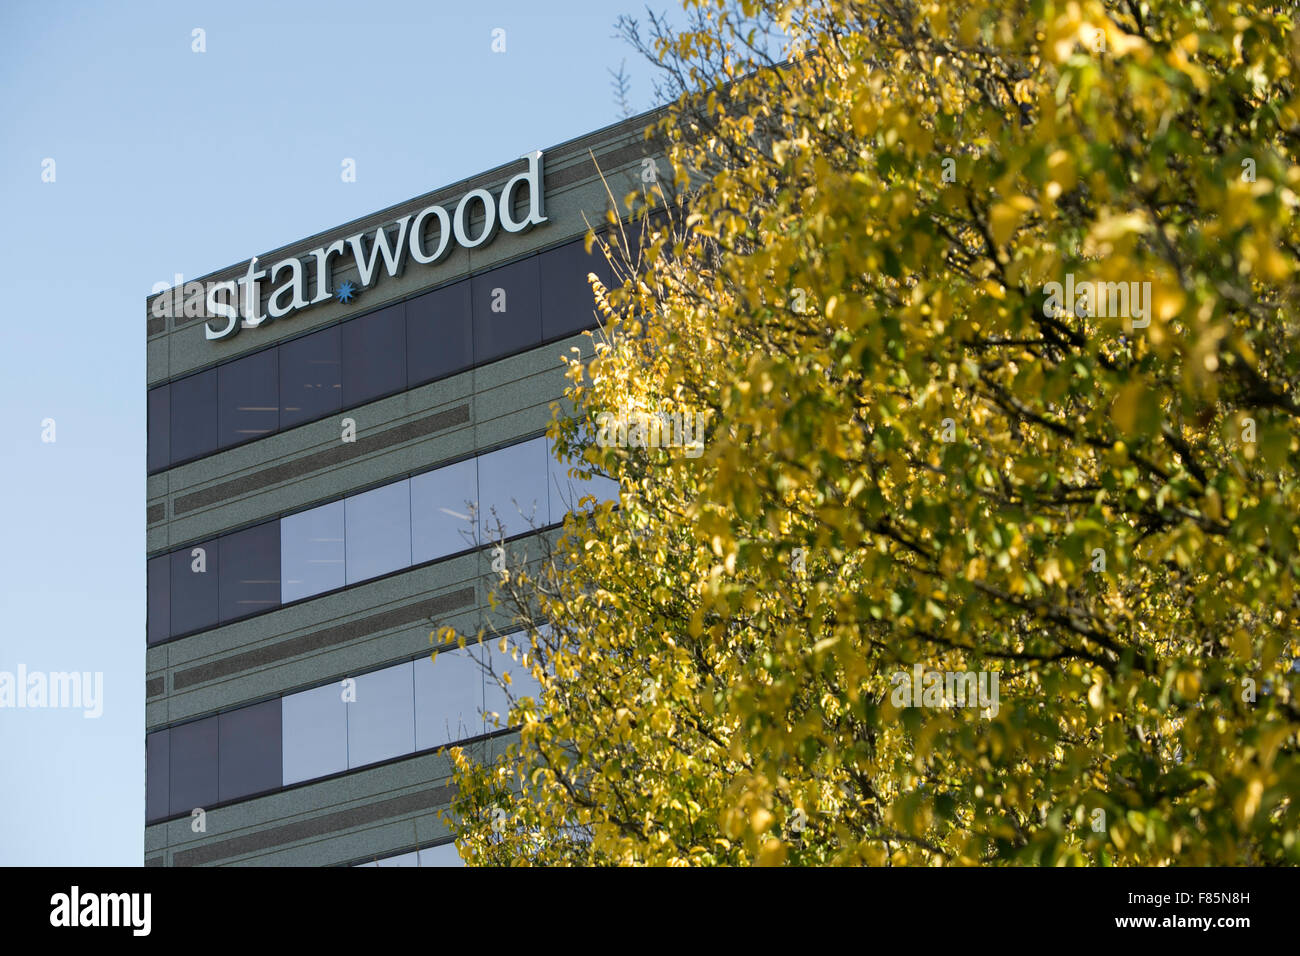 So you stayed at a Starwood hotel: Tips on data breach